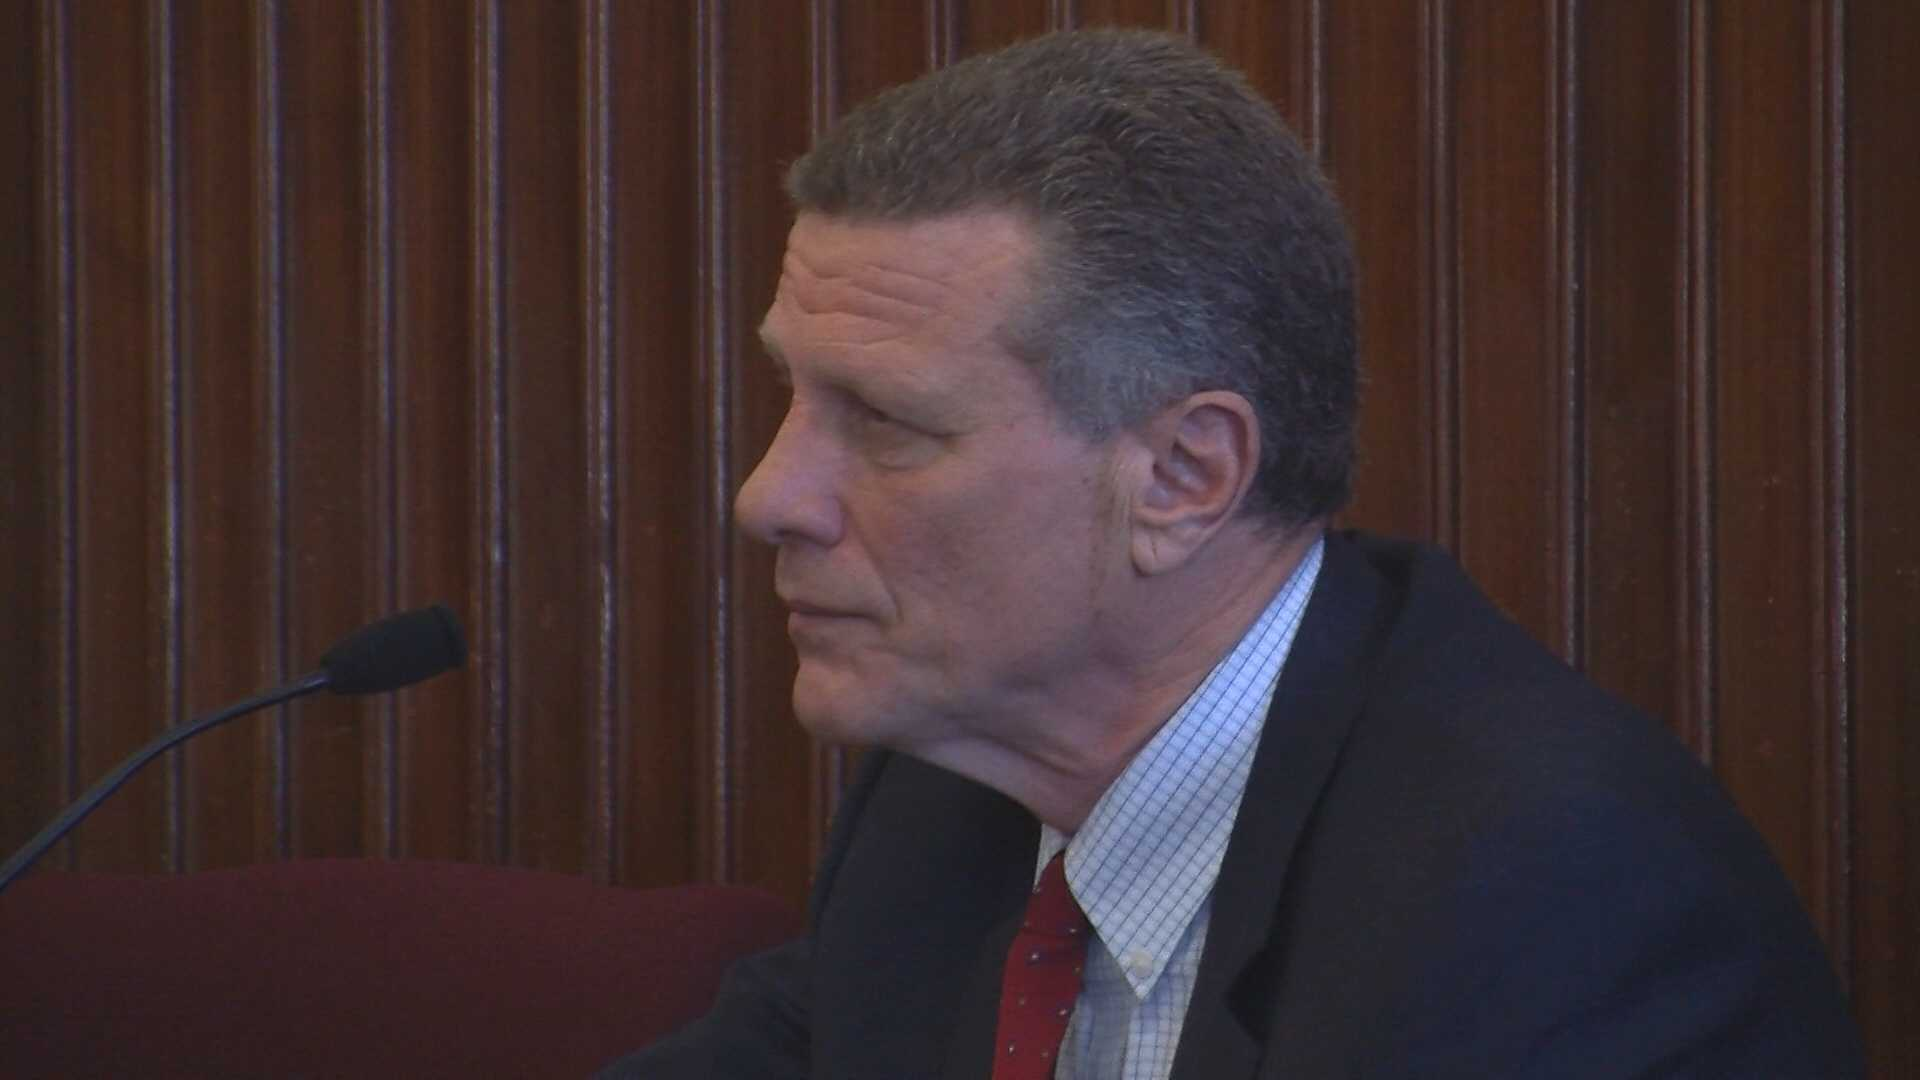 Ralph Nelson testifies in court in his case against St. Johnsbury's Board of Selectmen.